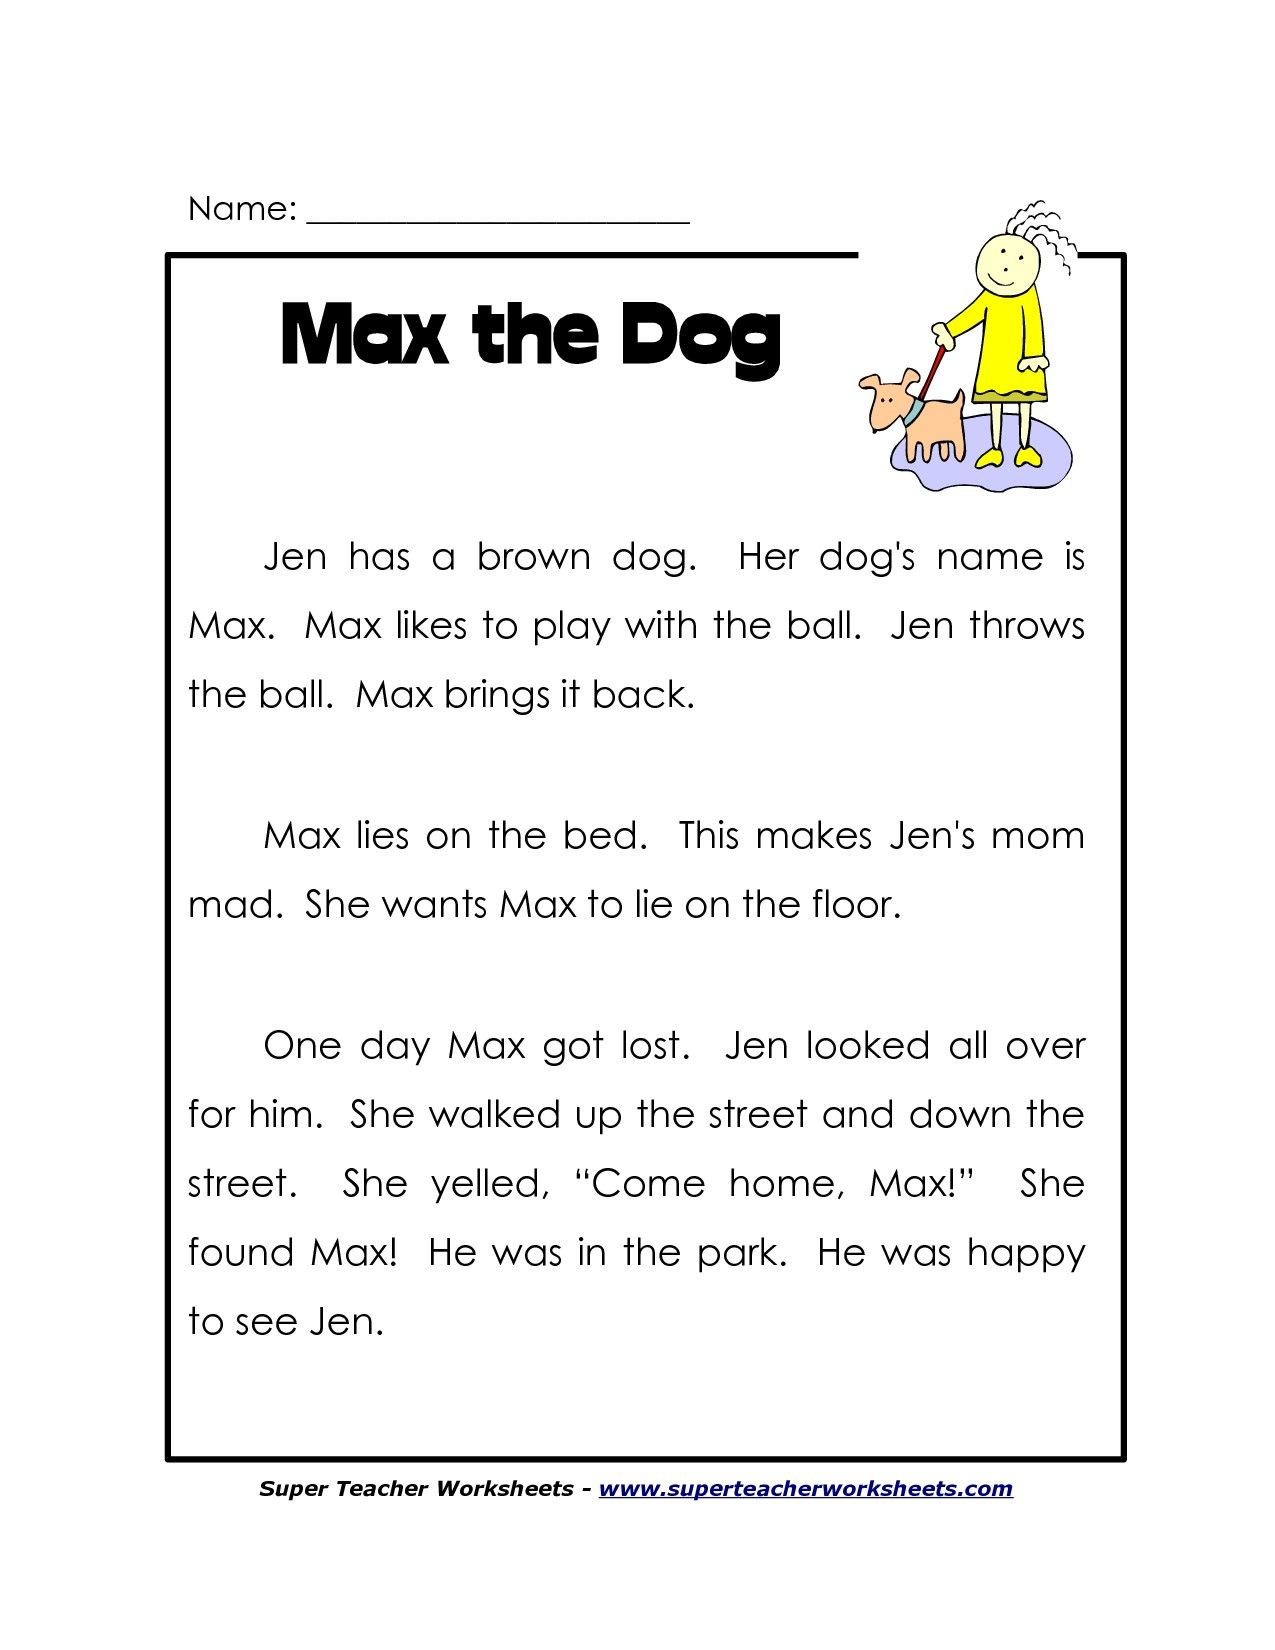 Worksheets Super Teacher Worksheets Science 1st grade reading worksheets free lots more on superteacherworksheets com